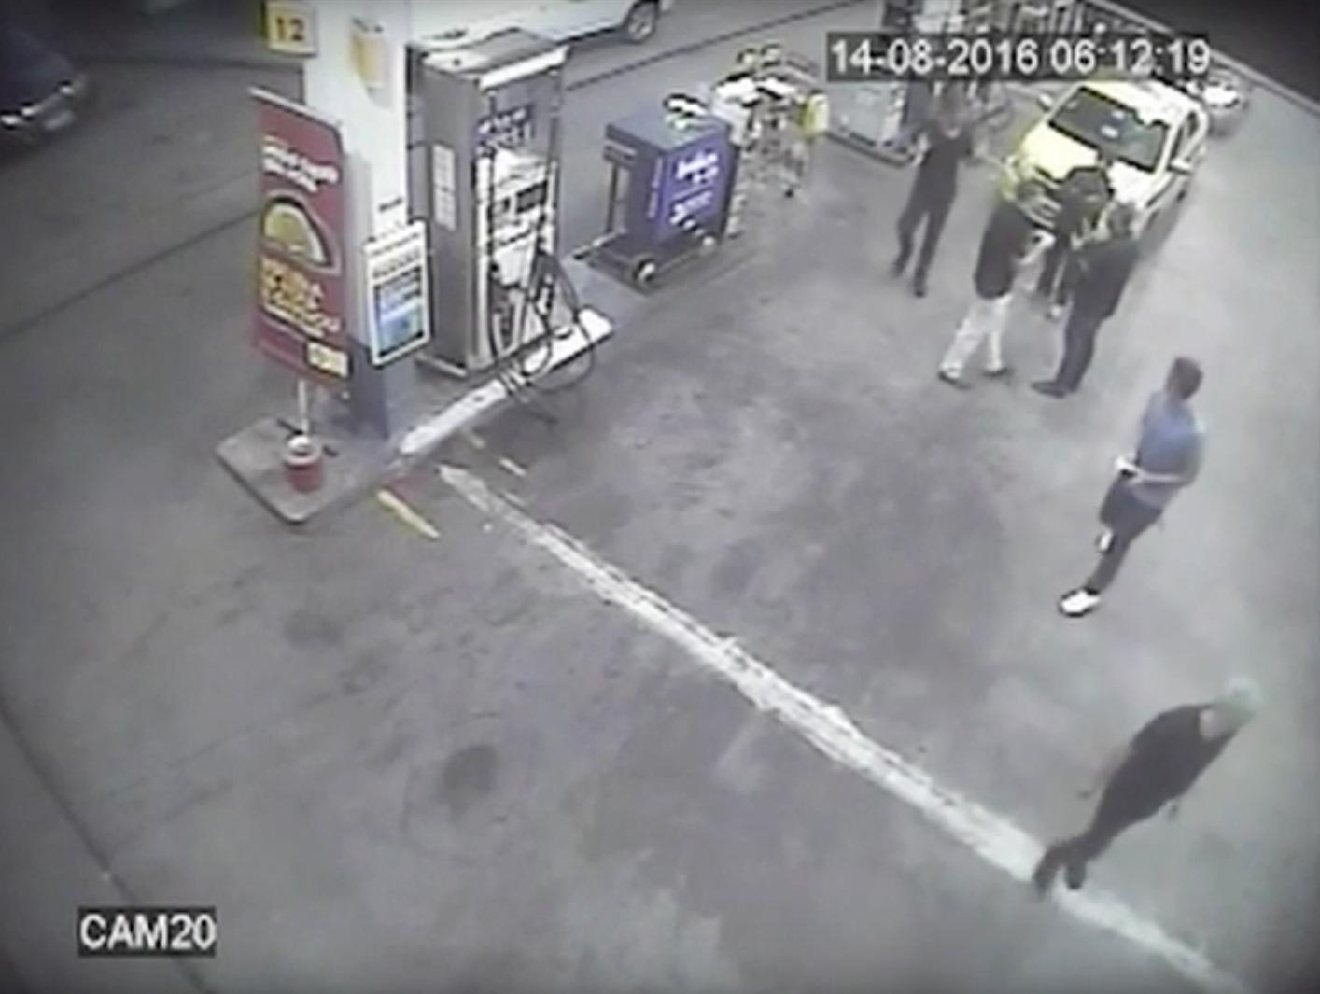 In this Sunday, Aug. 14, 2016 frame from surveillance video released by Brazil Police, swimmers from the United States Olympic team appear with Ryan Lochte, right, at a gas station during the 2016 Summer Olympics in Rio de Janeiro, Brazil. A top Brazil police official said the swimmers damaged property at the gas station. (Brazil Police via AP)